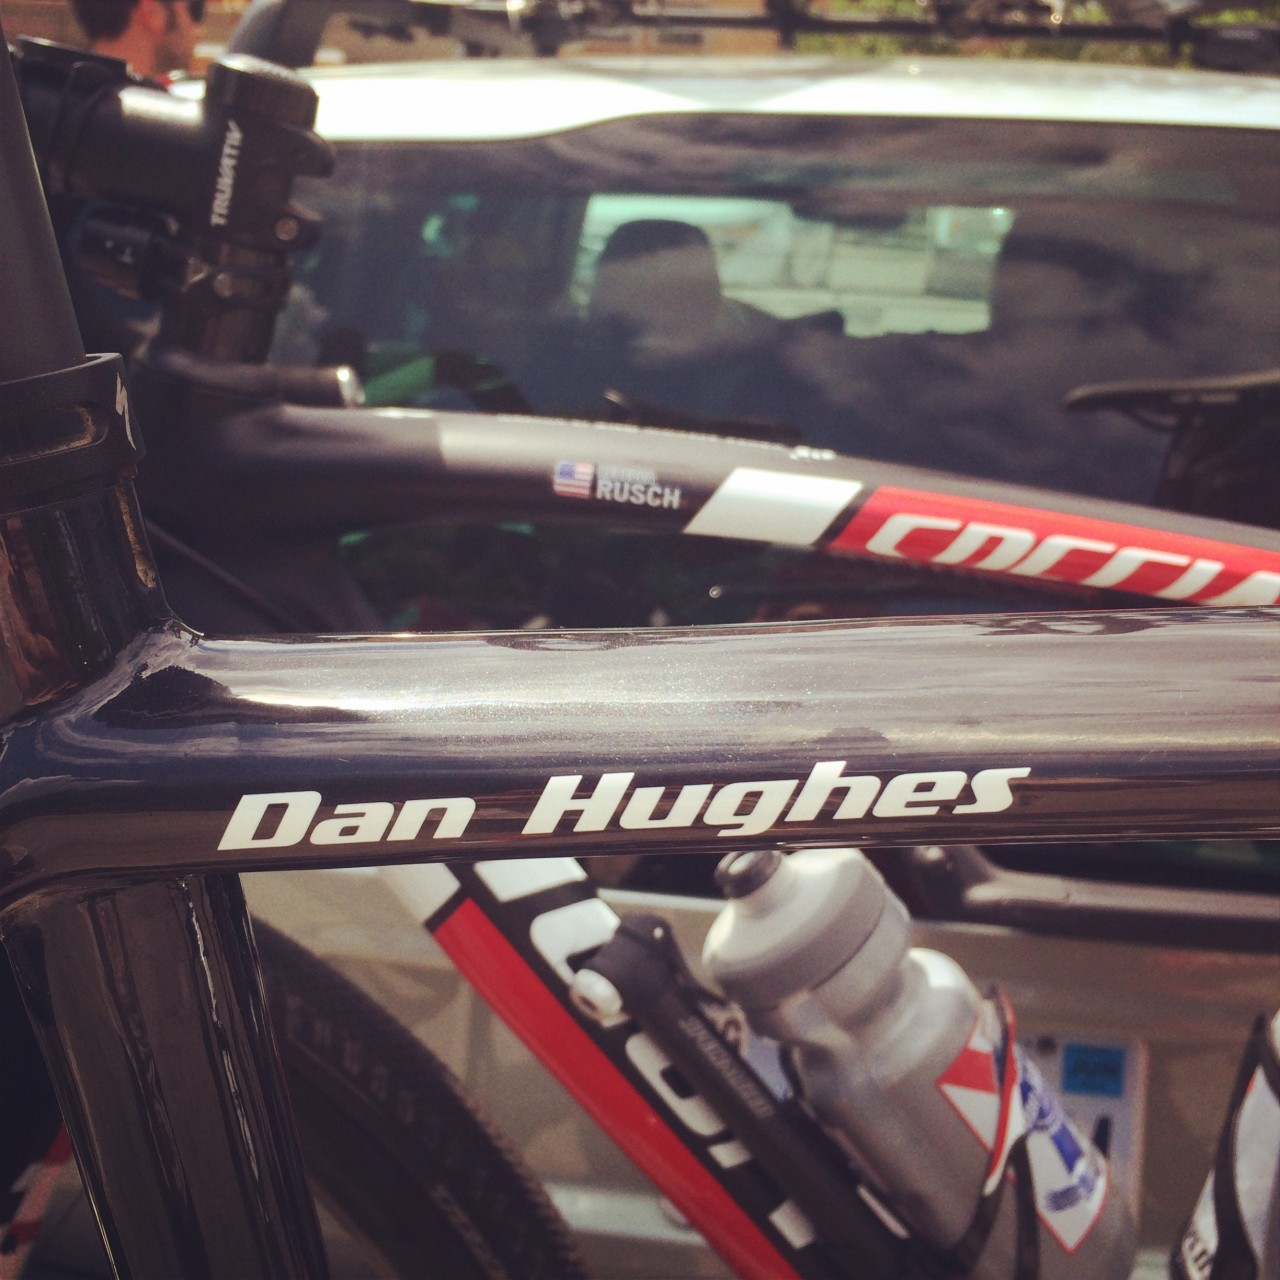 5 bikes on a the car, two of them to be piloted by a reigning King and a Queen the next day.